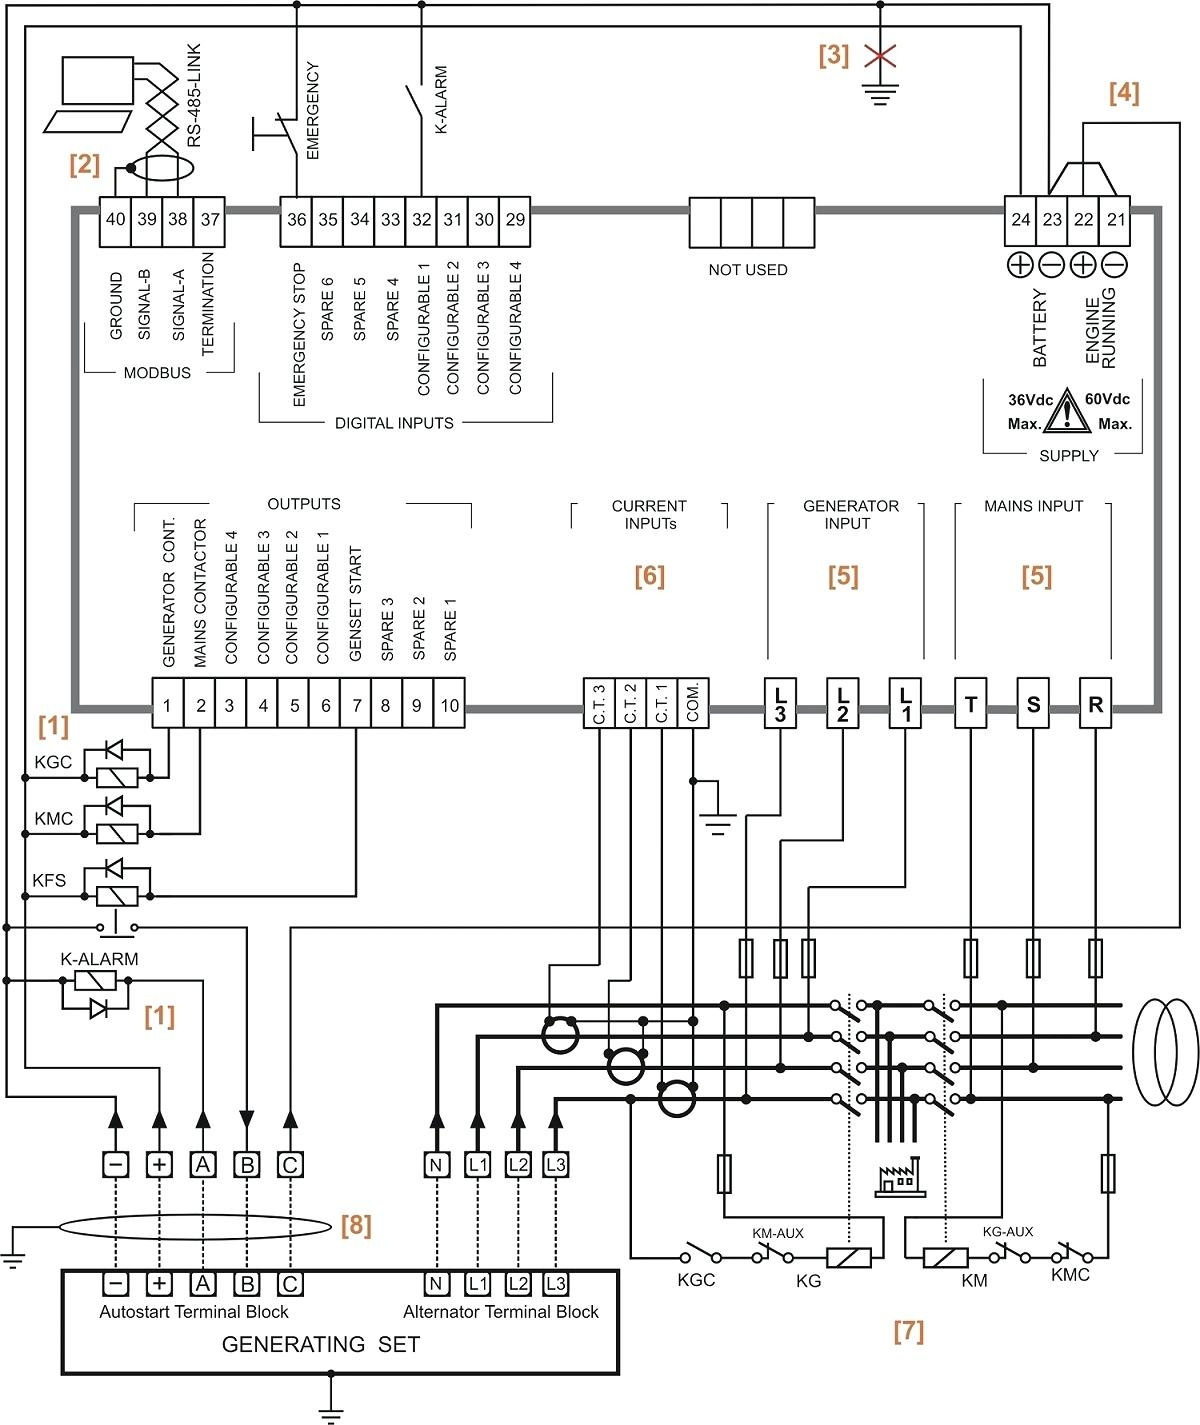 Automatic Transfer Switch Wiring Diagram Free - Simple Wiring Diagram - Rv Automatic Transfer Switch Wiring Diagram